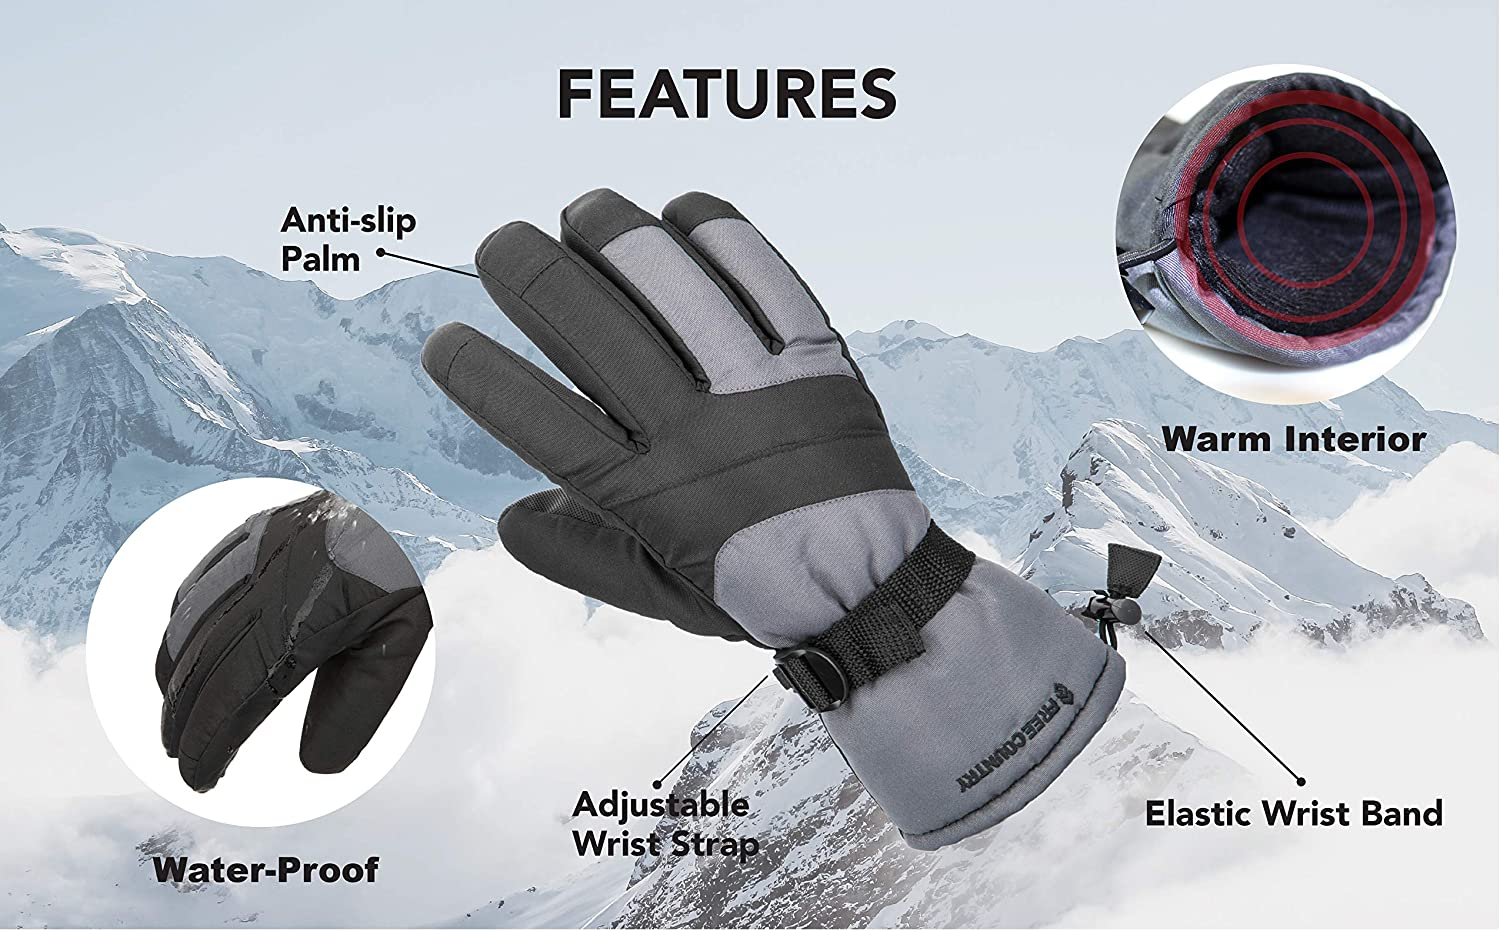 Cold Weather Thermal Glove for Men Free Country Winter Ski Gloves